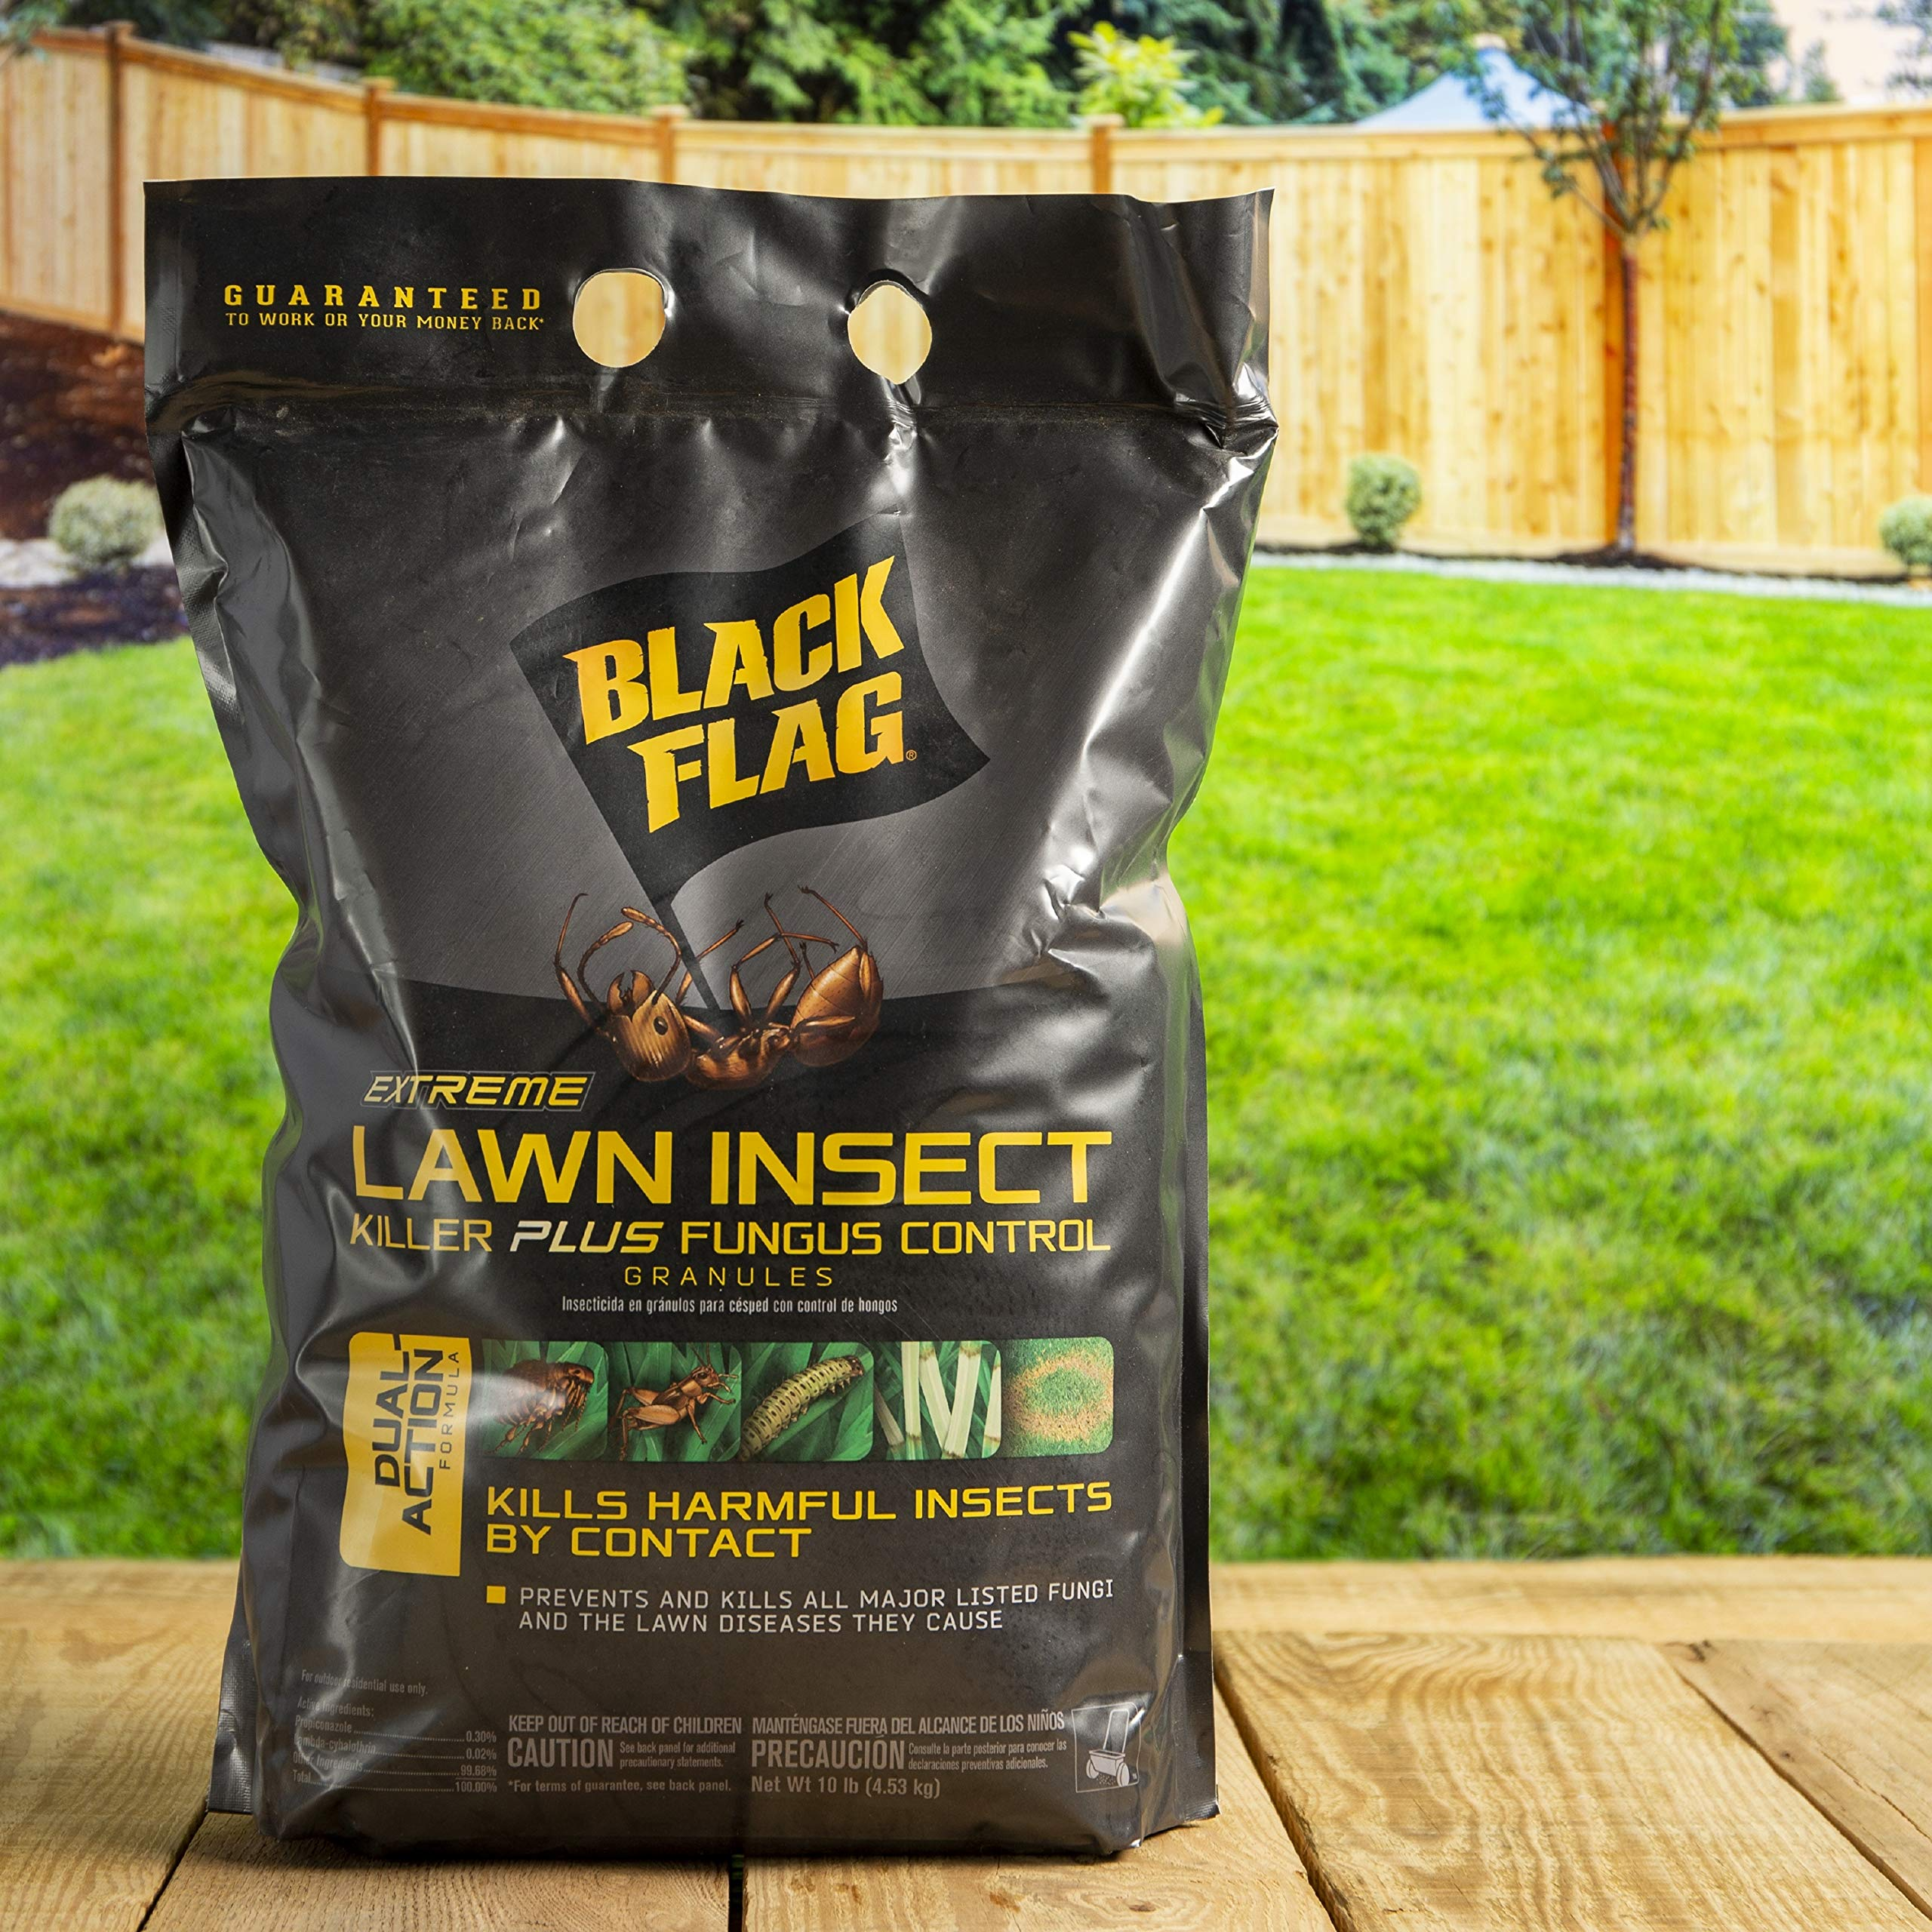 Black Flag Extreme Lawn Insect Killer + Fungus Control Granules, 10-Pound, 4-Pack by Black Flag